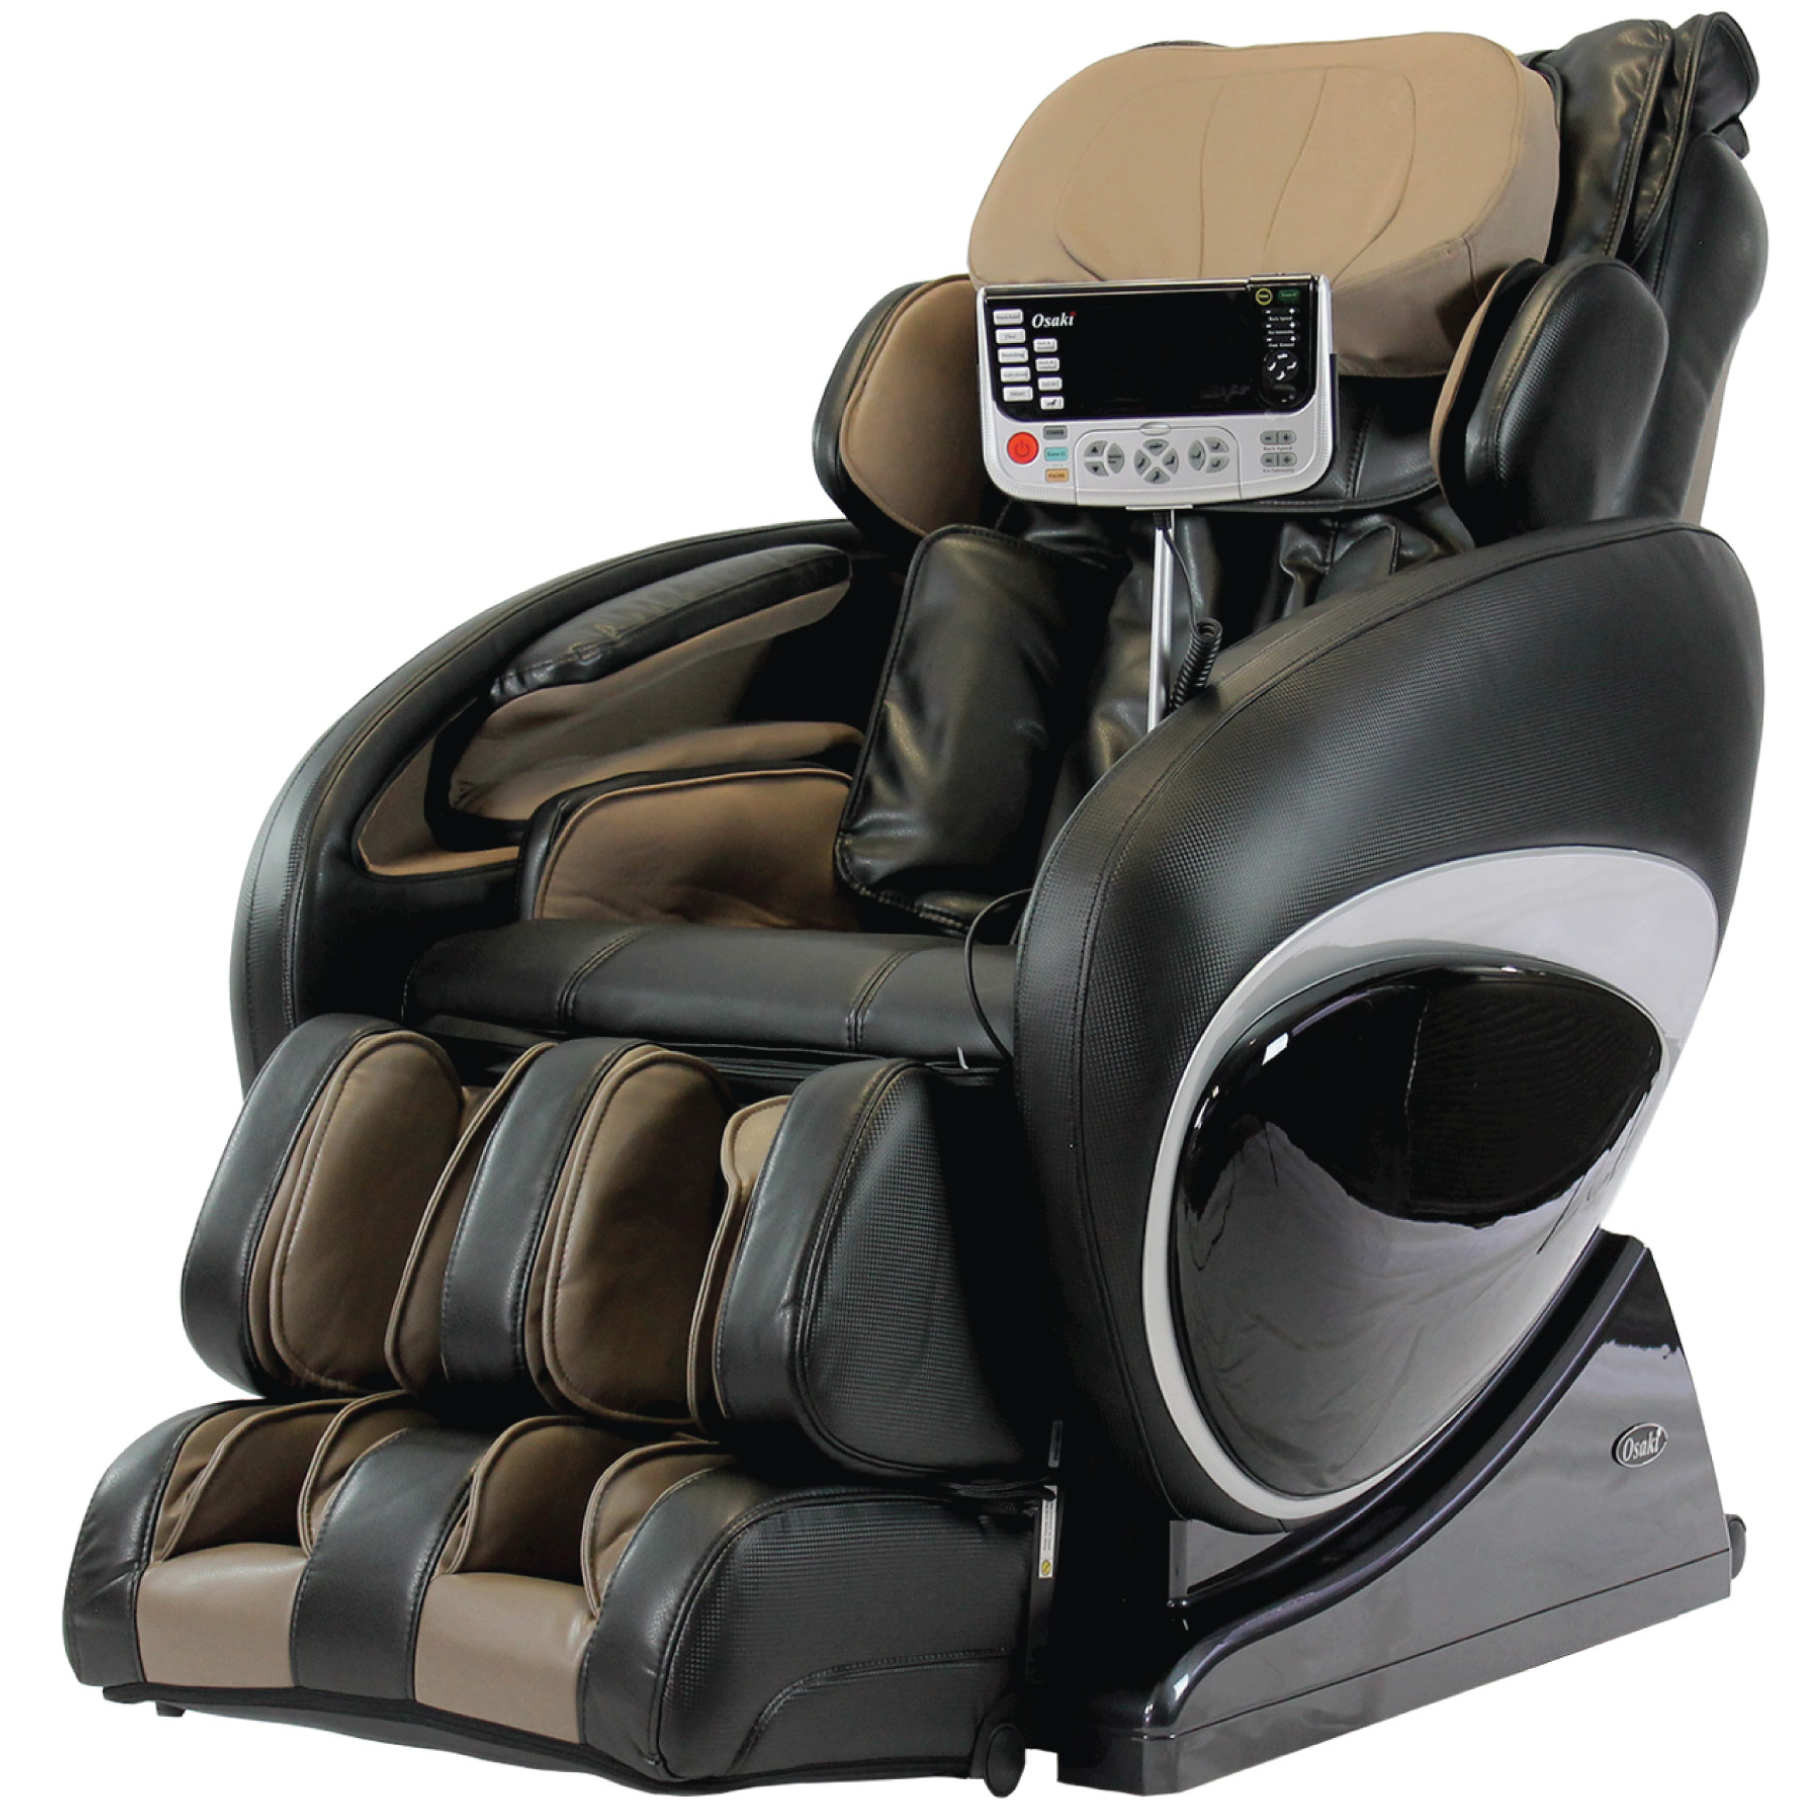 Osaki OS-4000T Zero Gravity Massage Chair, Black, Compute...